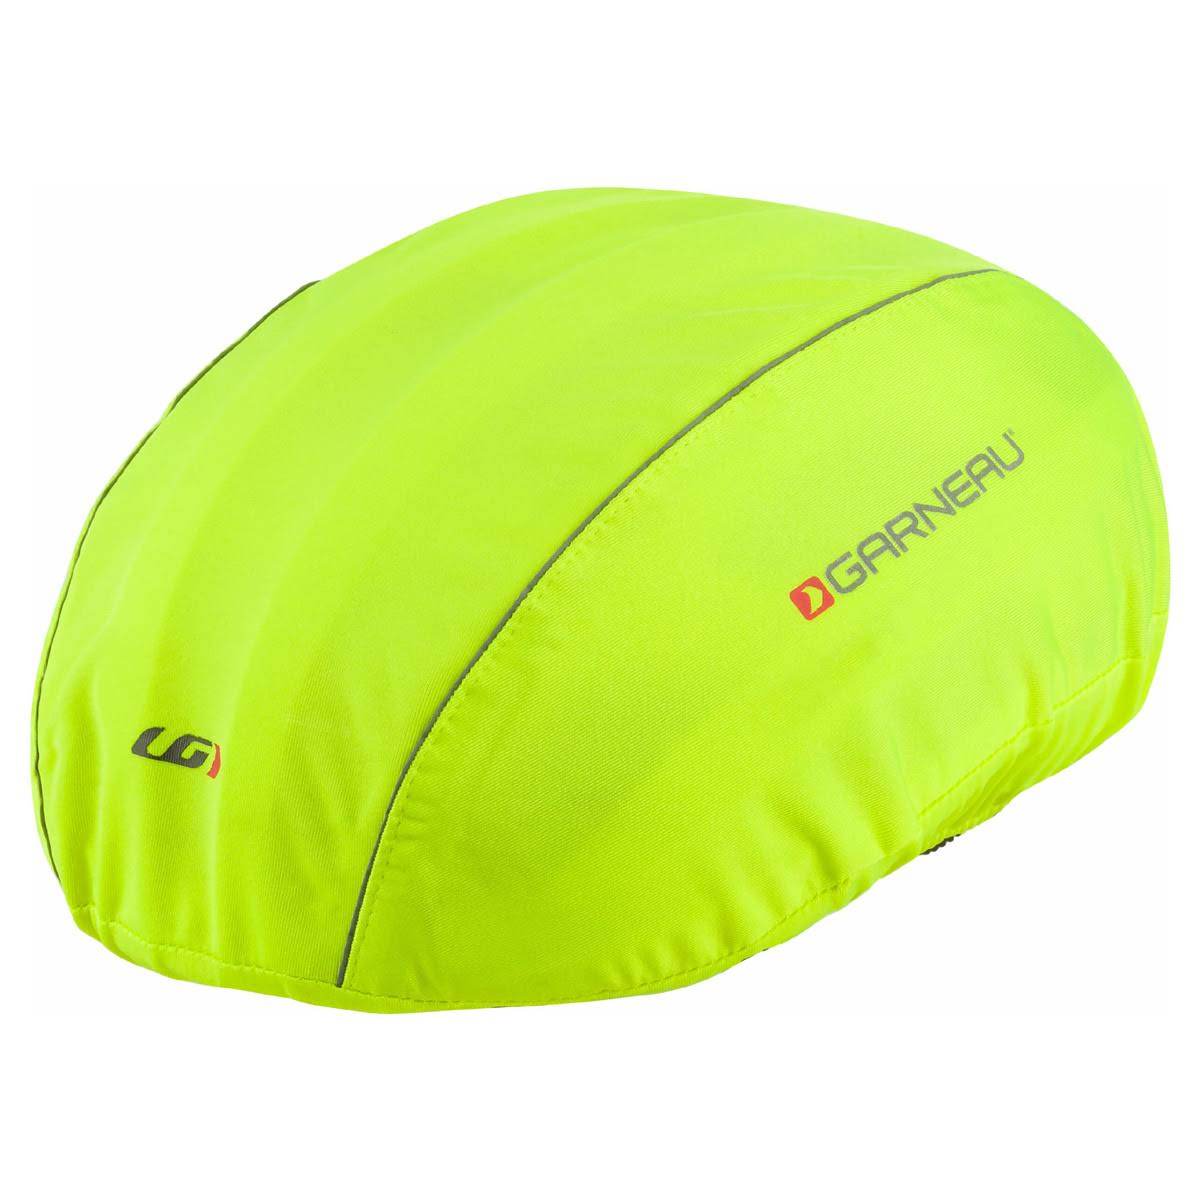 Louis Garneau H2 Helmet Cover - Bright Yellow, Small to Medium